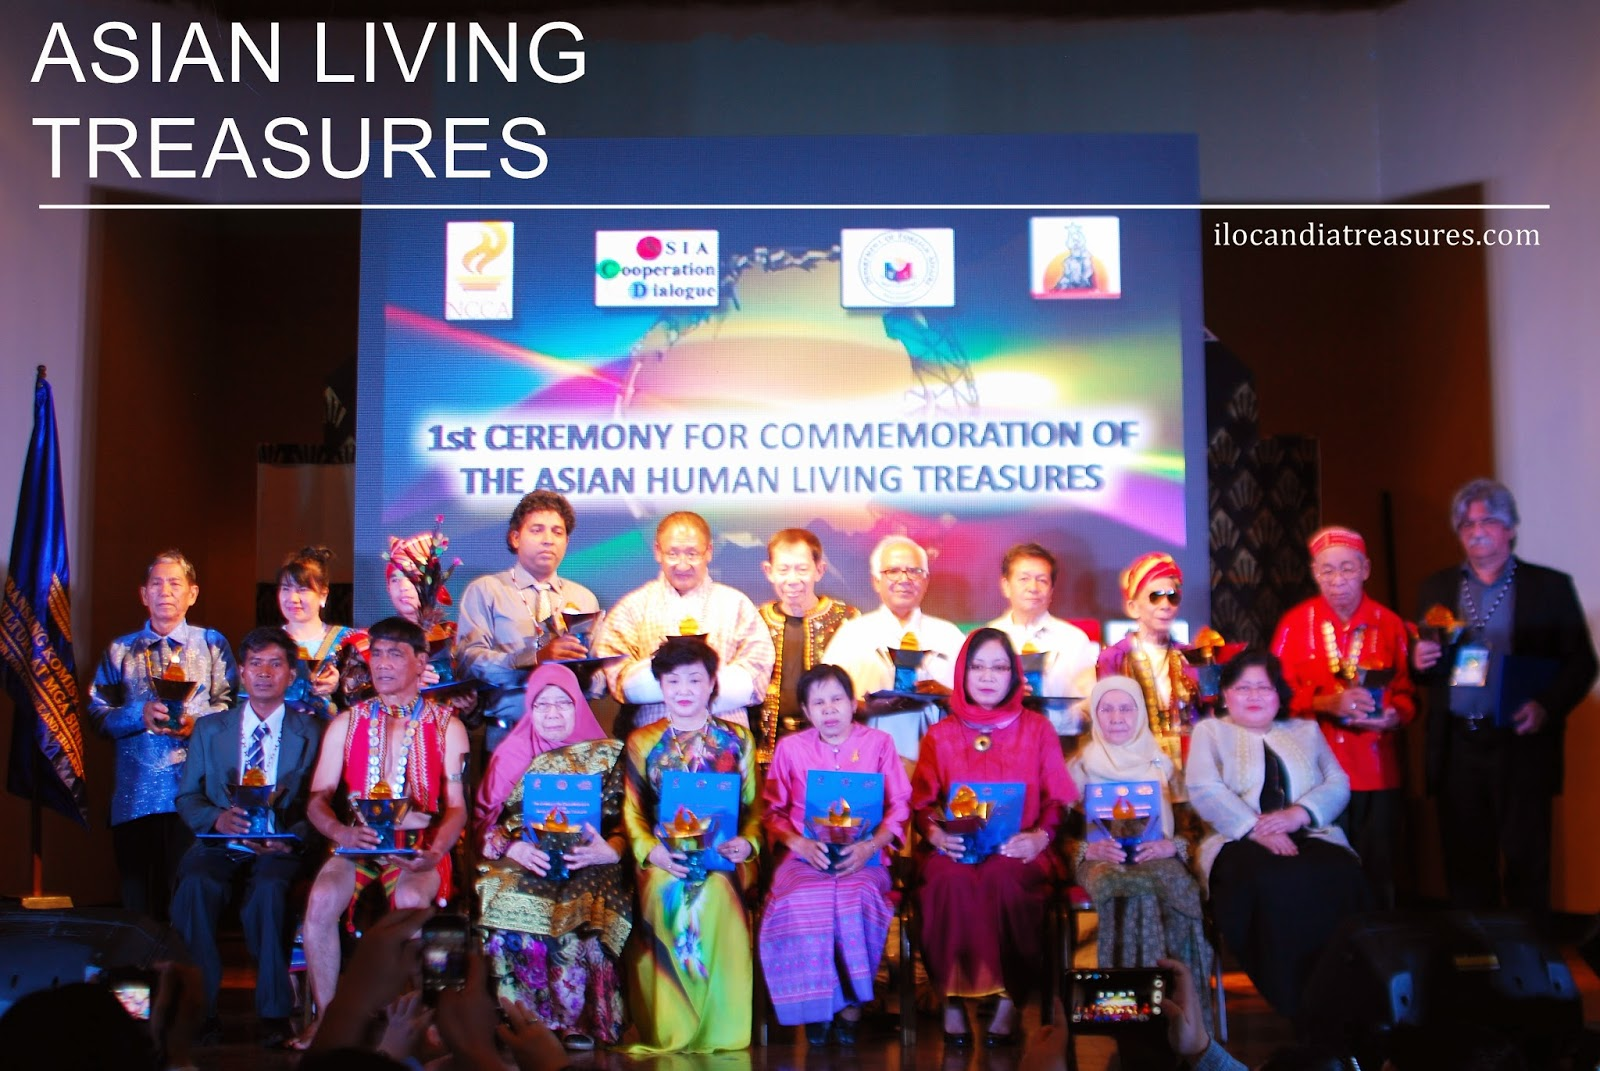 Department Of Foreign Affairs Held The First Ceremony For Commemoration Asian Living Human Treasures At Manila Hotel On May 20 21 2017